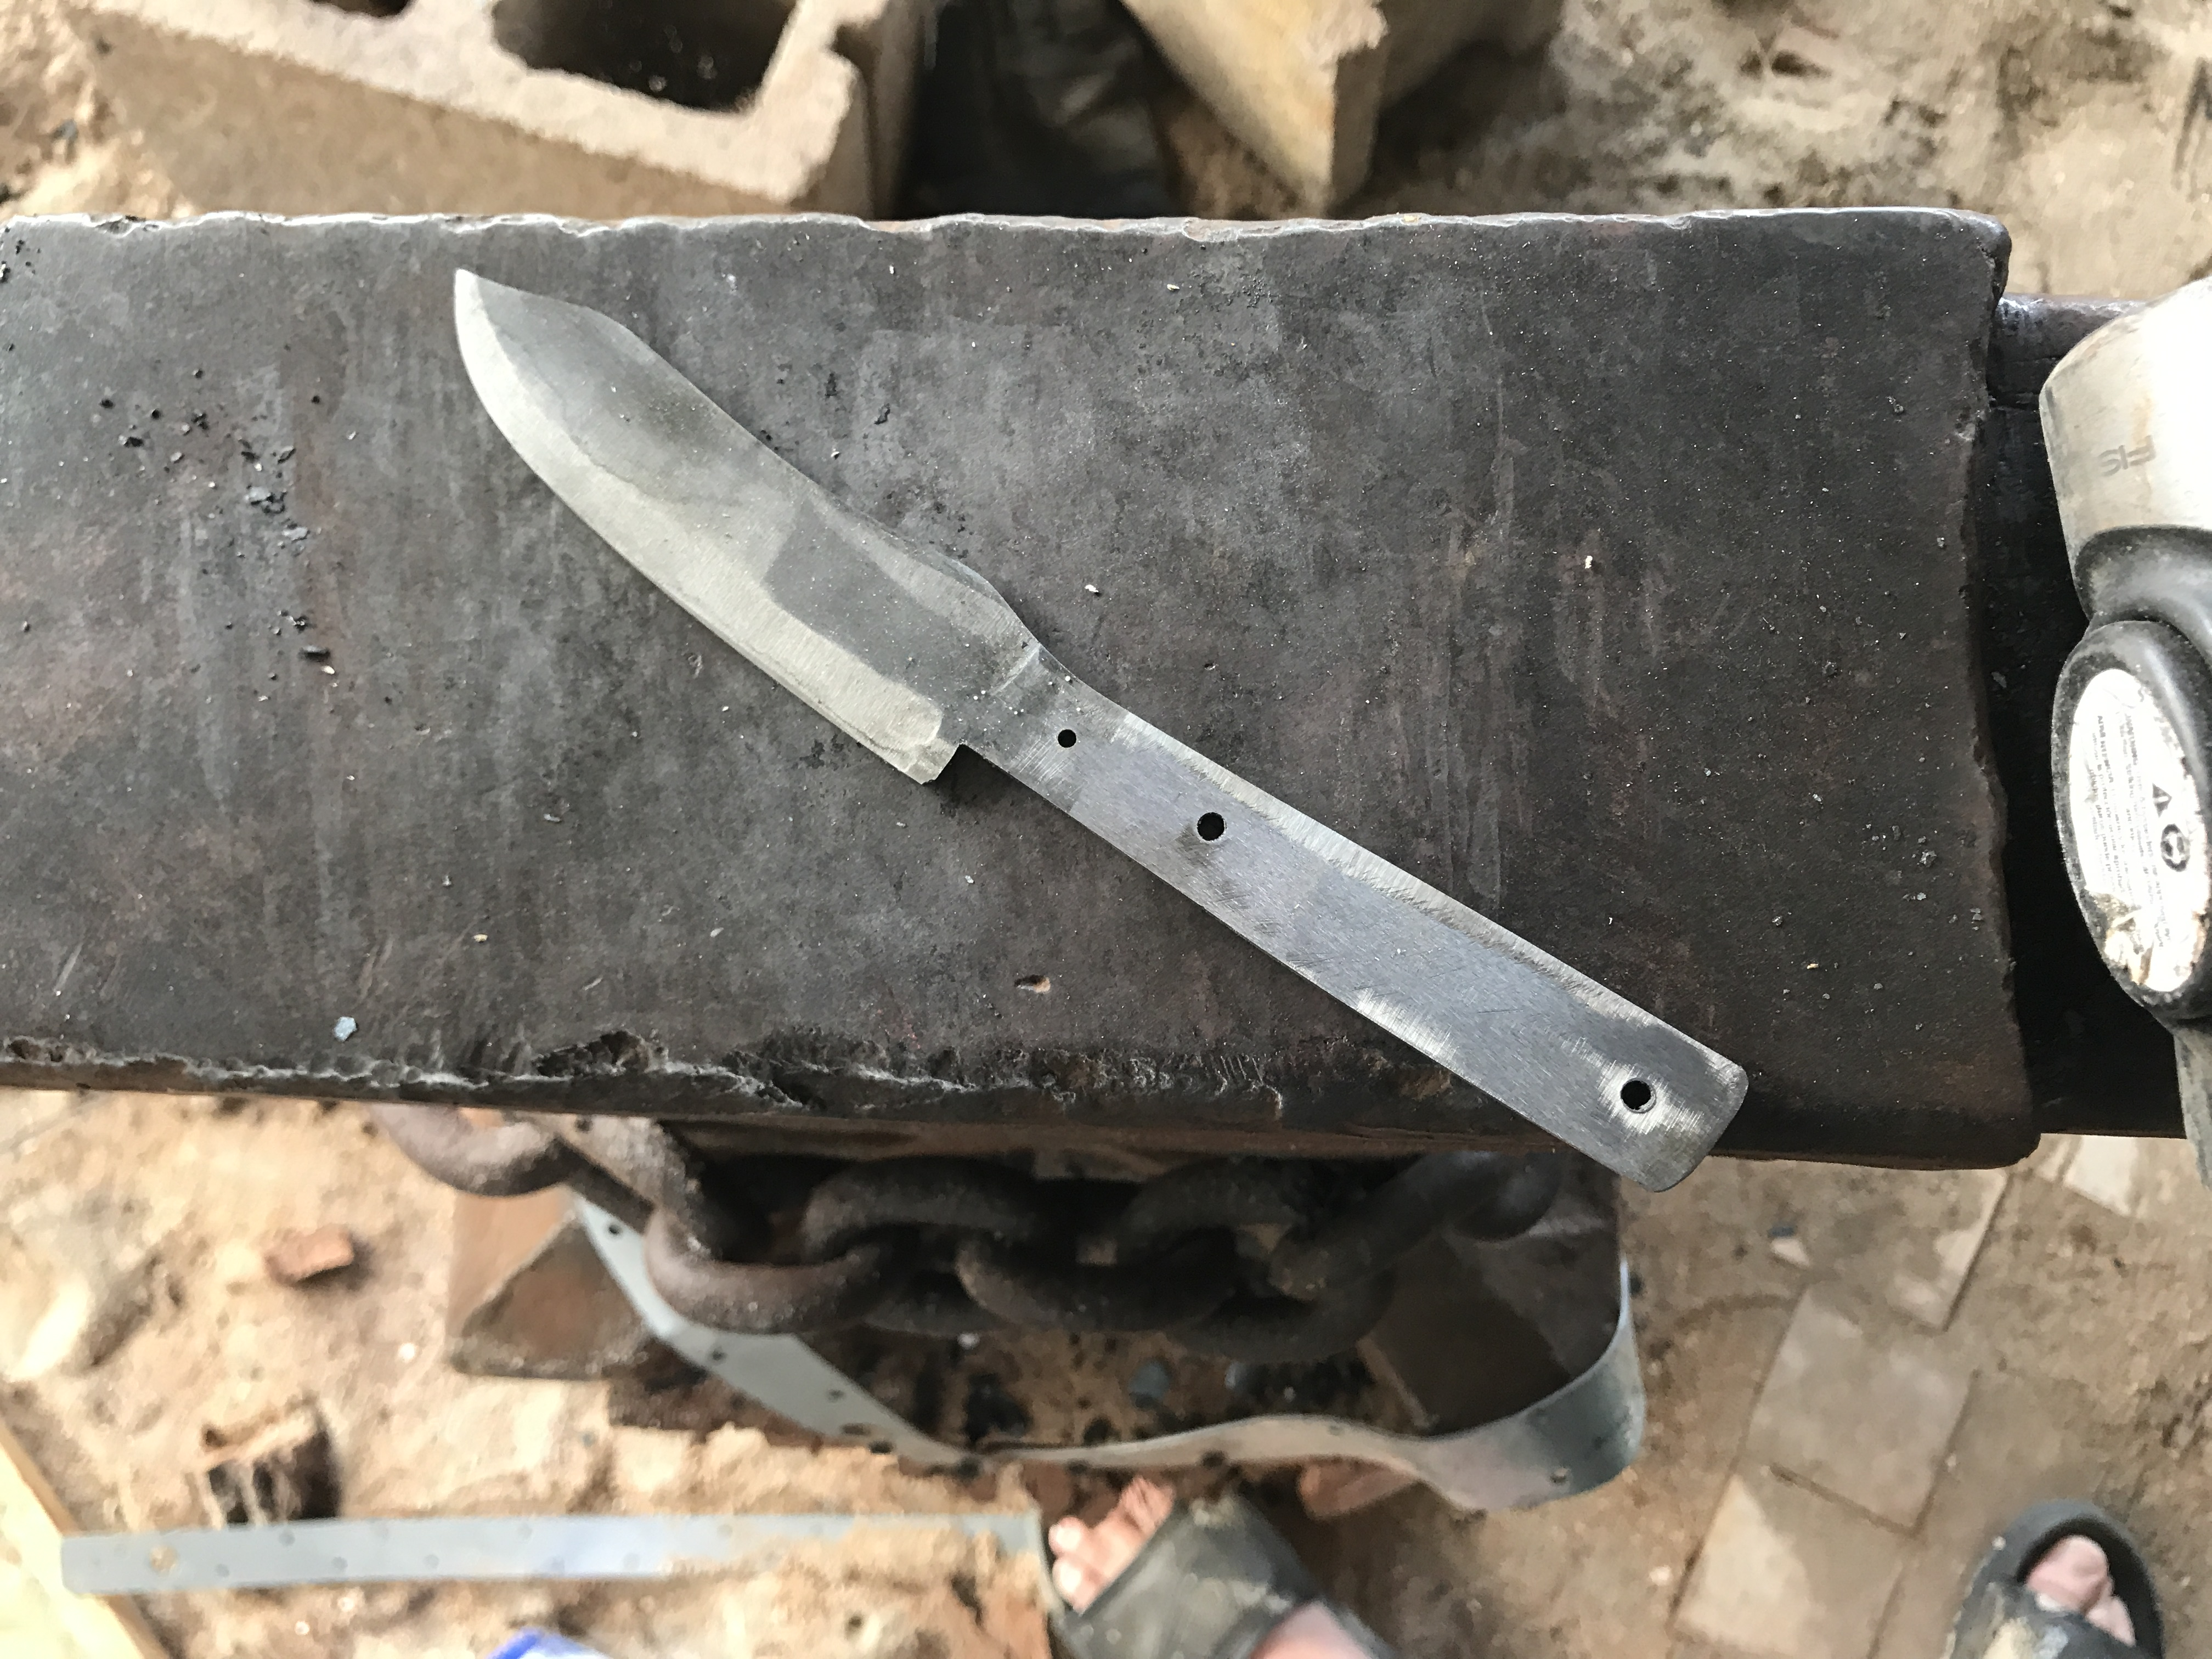 52100 & W2 damascus skinner. Work in progress - Knife Making - I ...